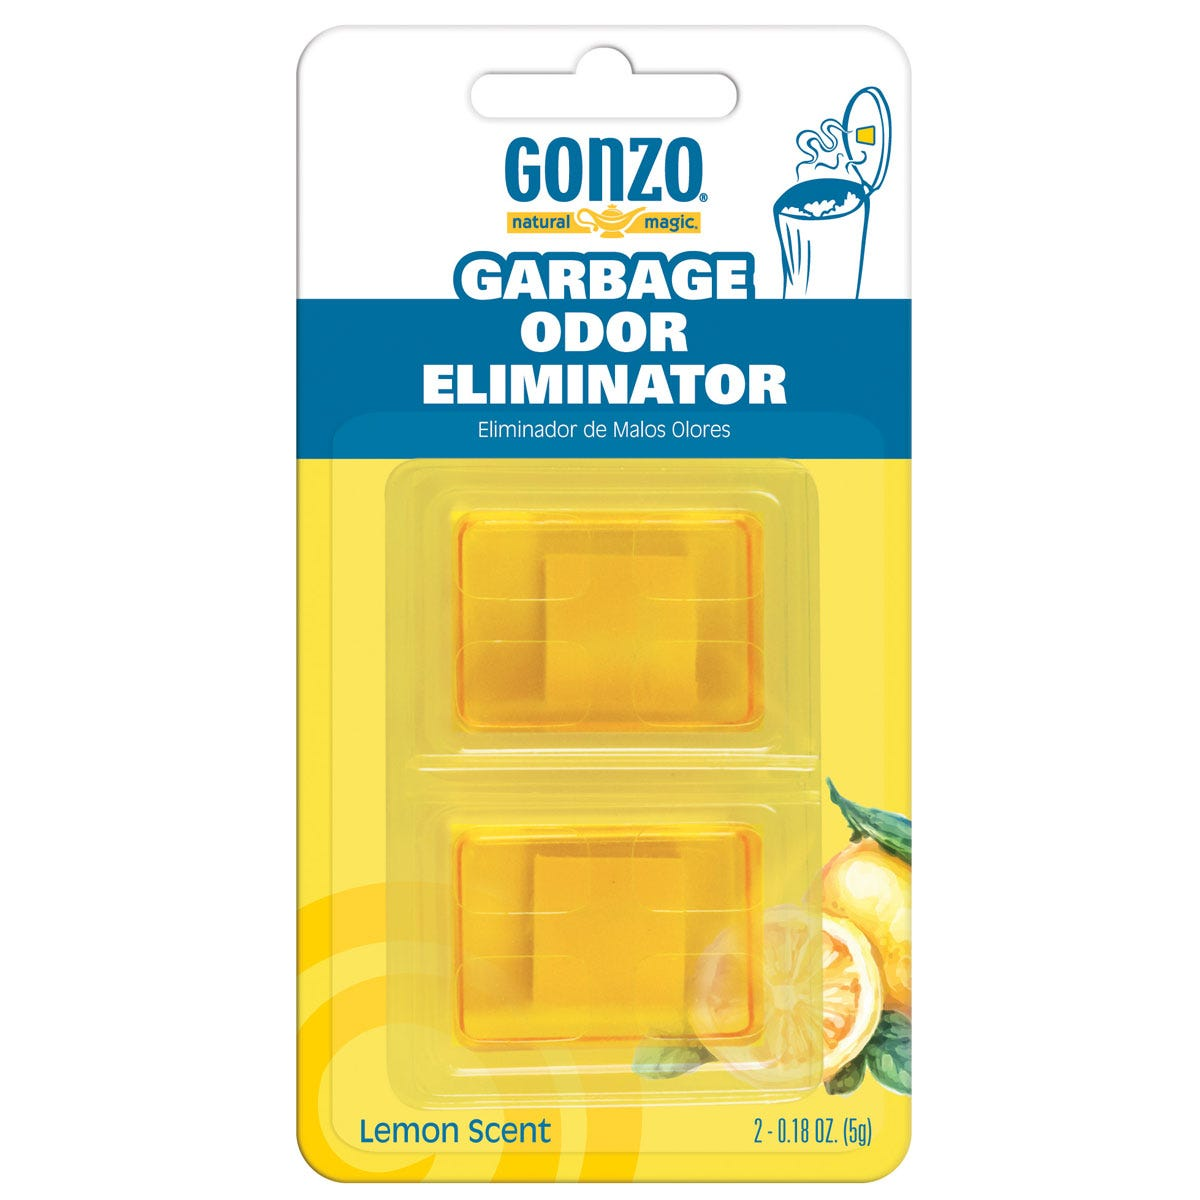 Garbage Odor Eliminator